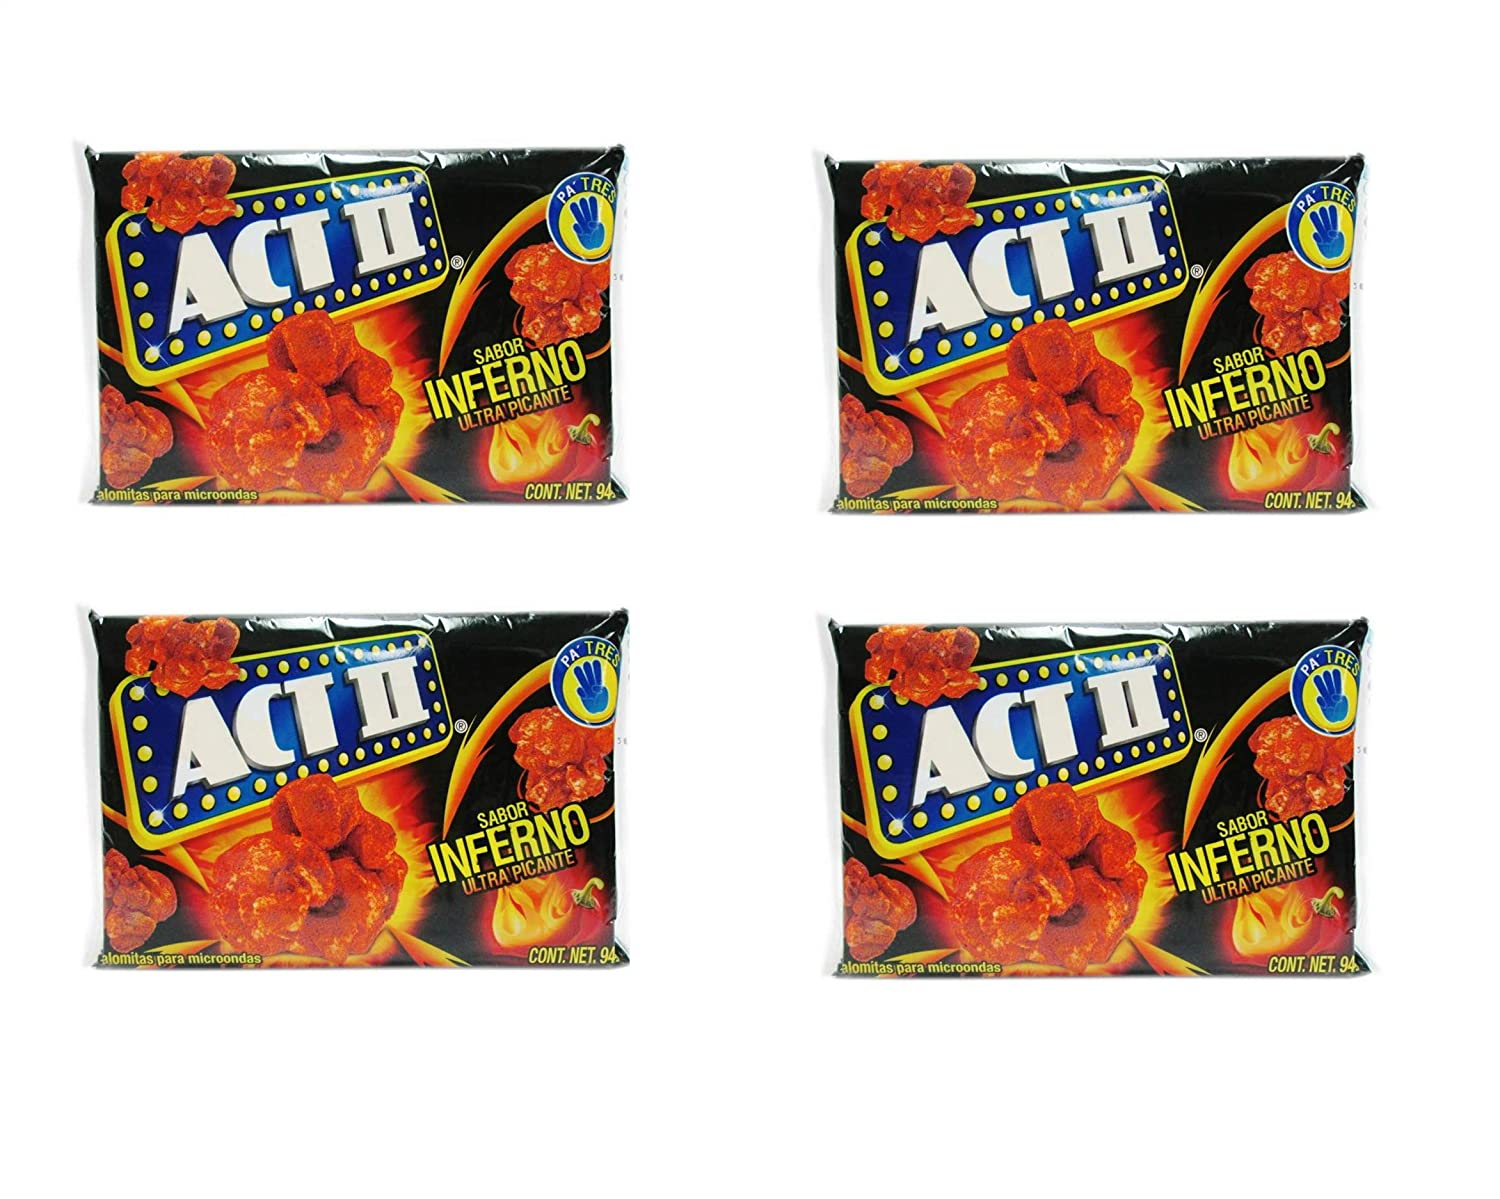 Amazon.com: Act II Popcorn Palomitas sabor Inferno Ultra ...